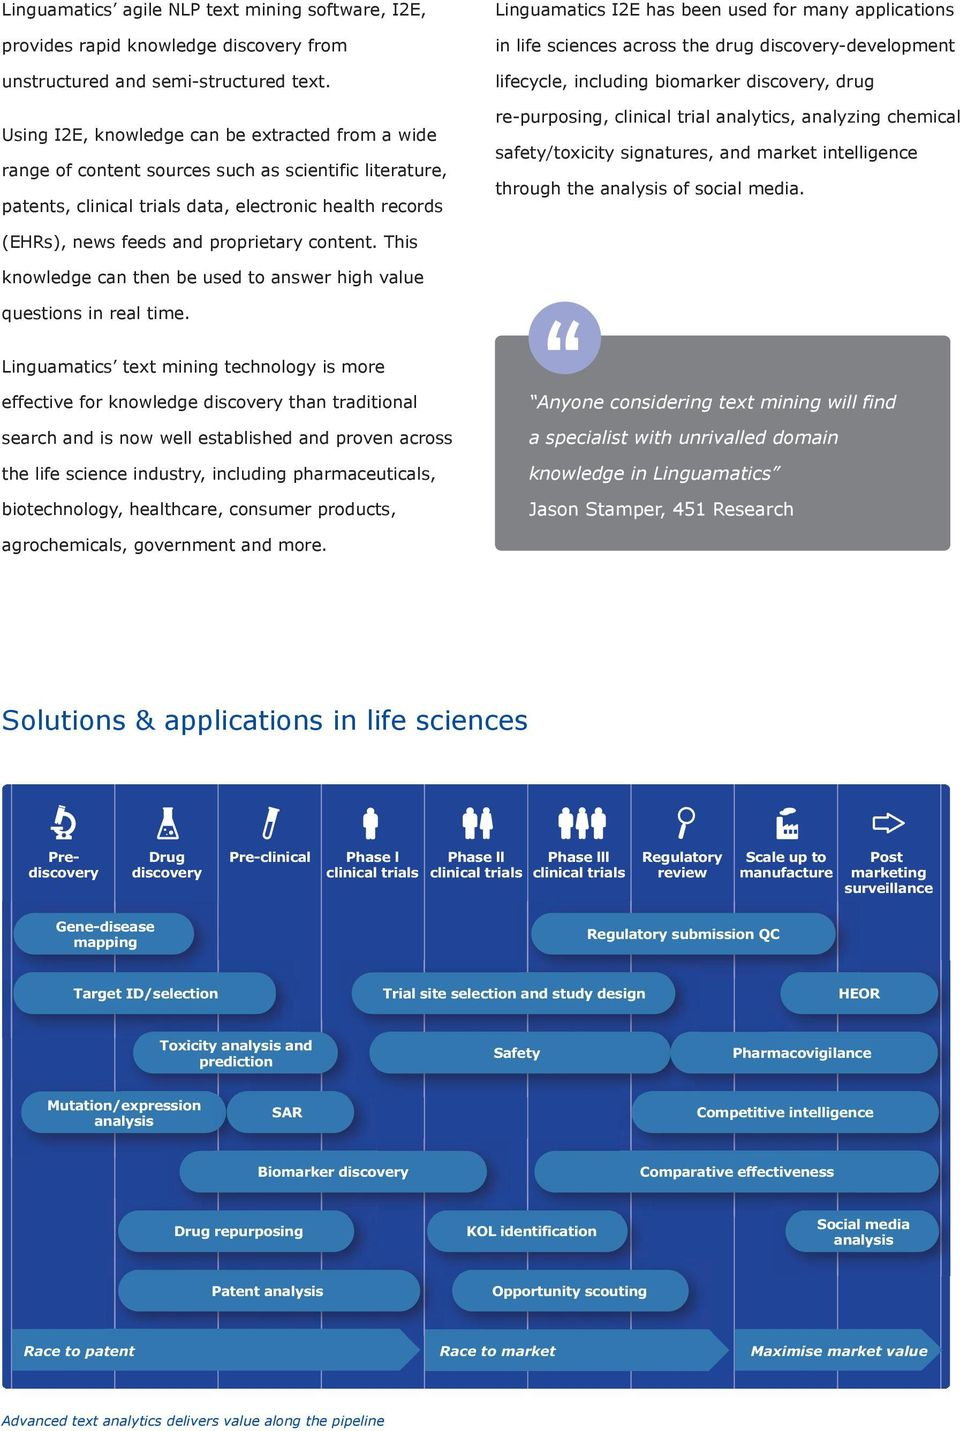 many applications in life sciences across the drug discovery-development lifecycle, including biomarker discovery, drug re-purposing, clinical trial analytics, analyzing chemical safety/toxicity